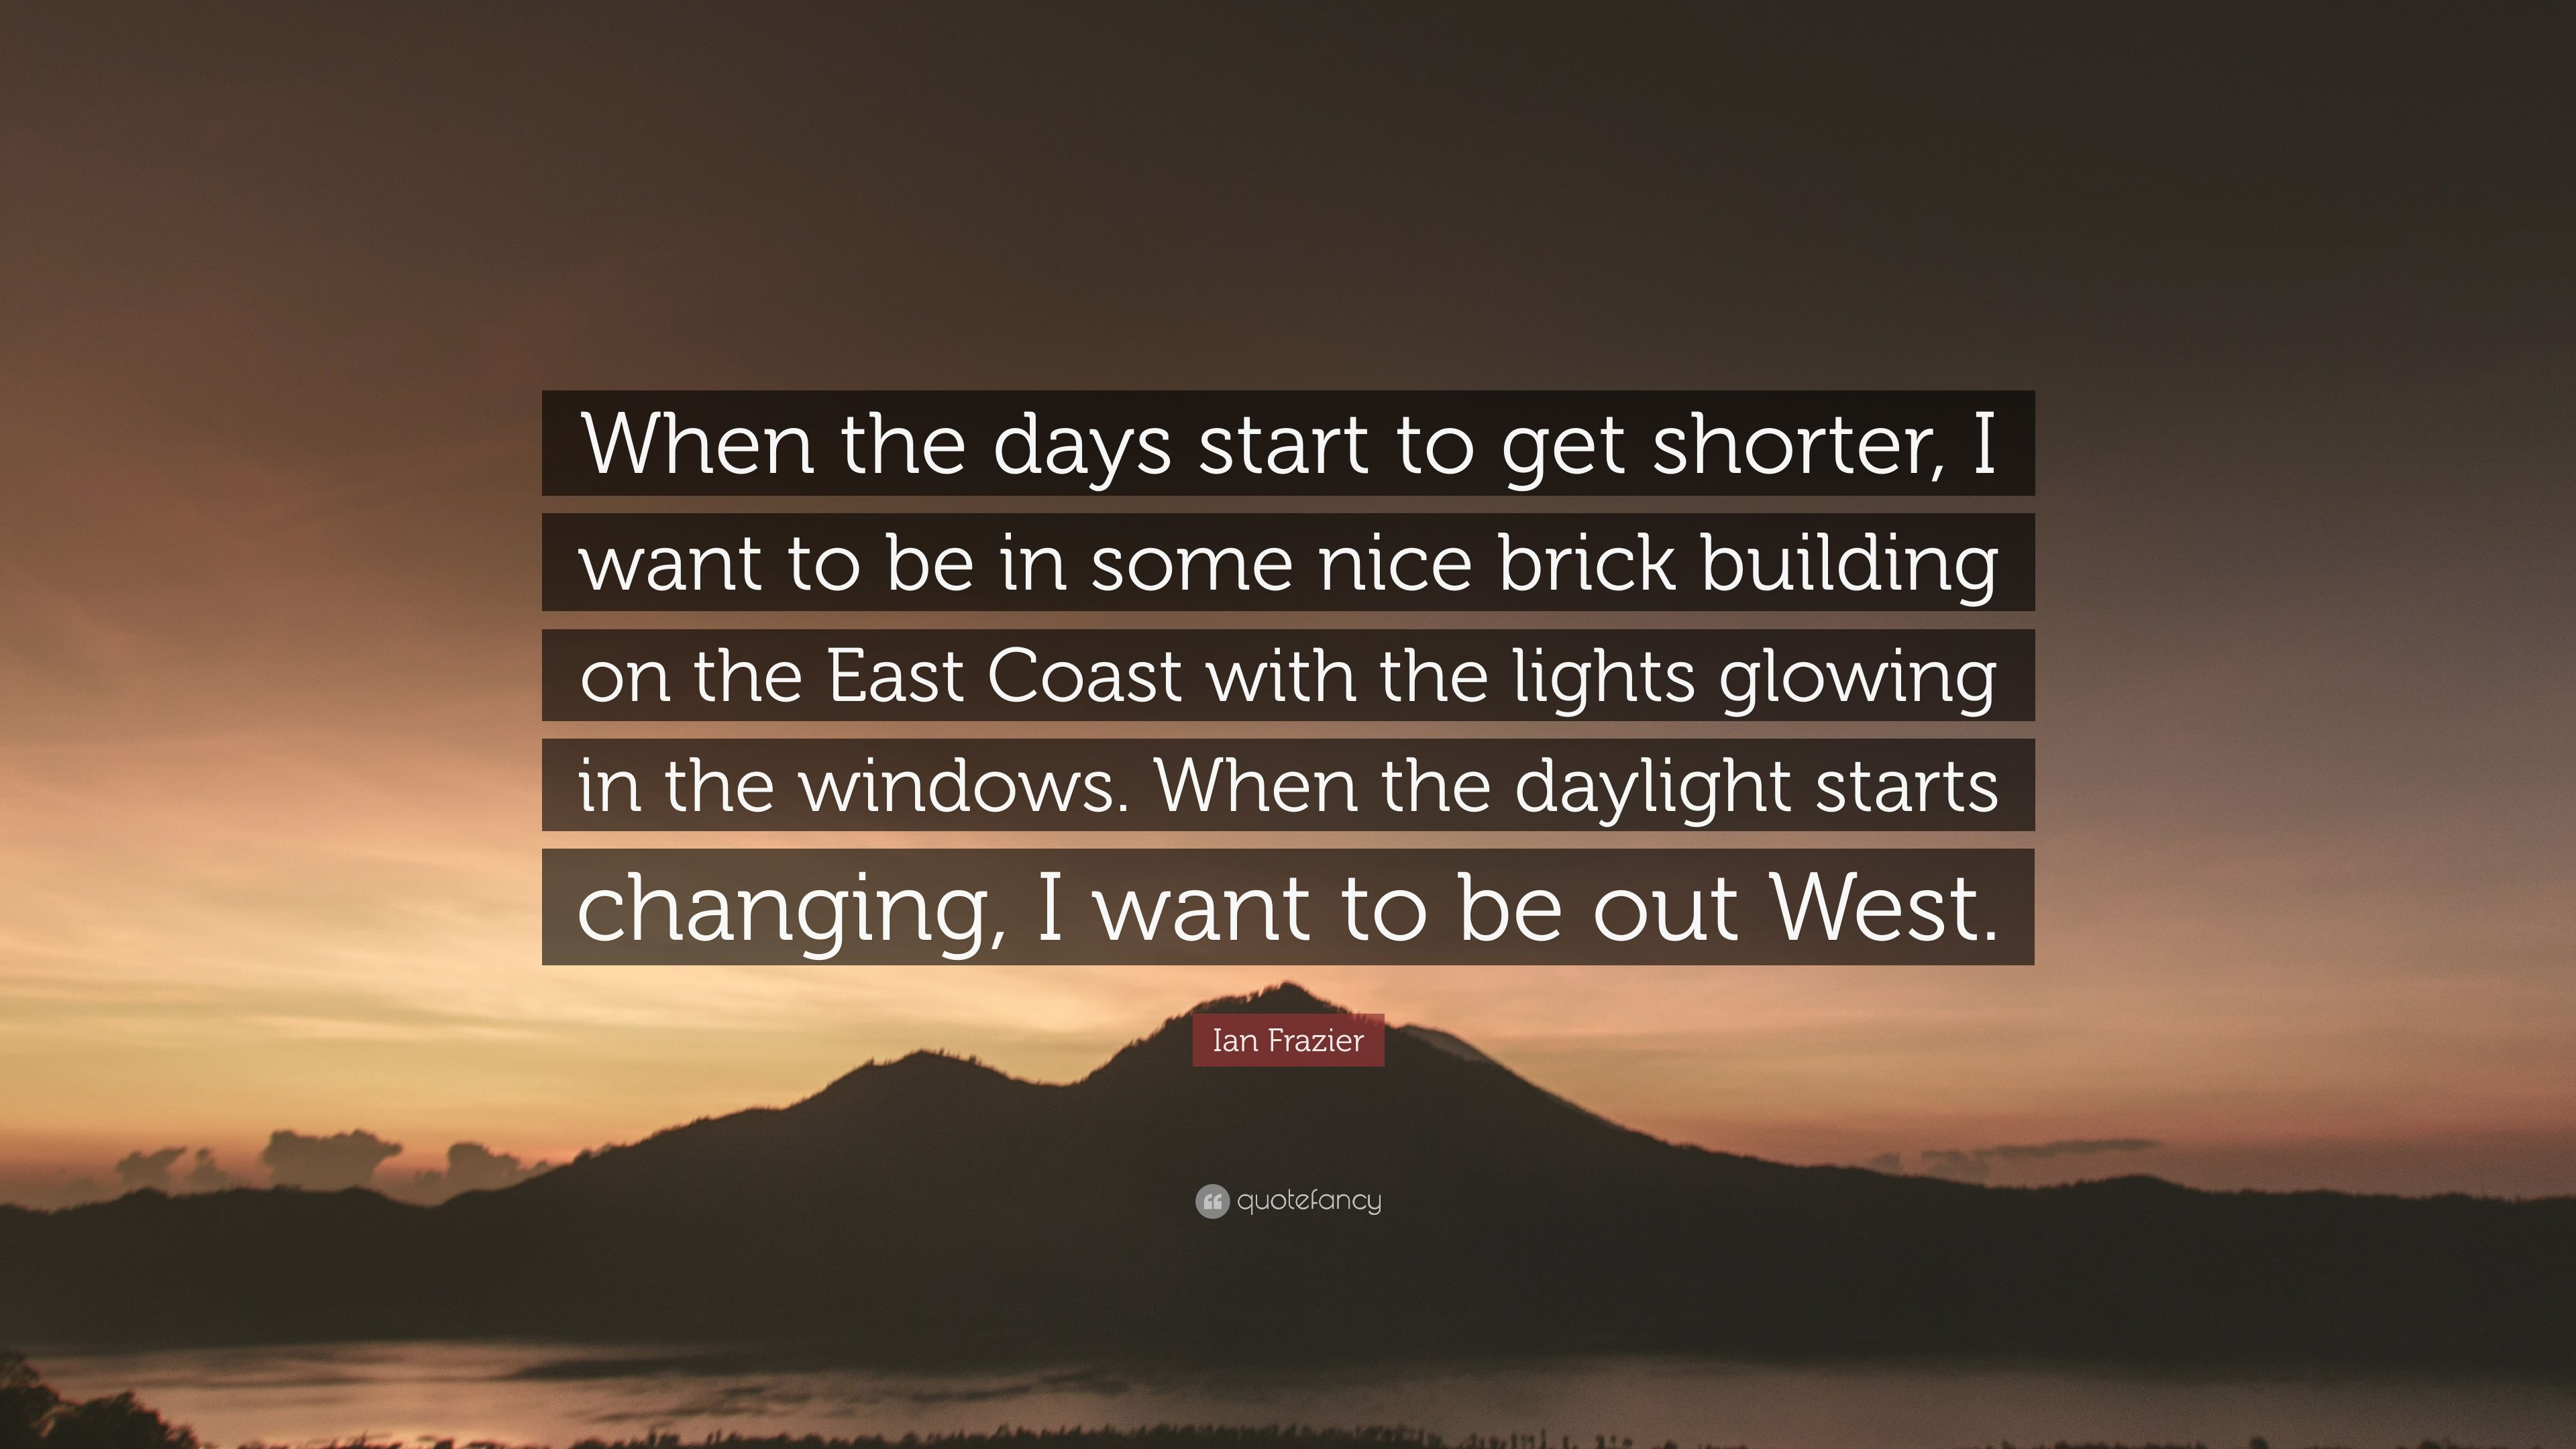 Ian Frazier Quote When The Days Start To Get Shorter I Want To Be In Some Nice Brick Building On The East Coast With The Lights Glowing I 7 Wallpapers Quotefancy